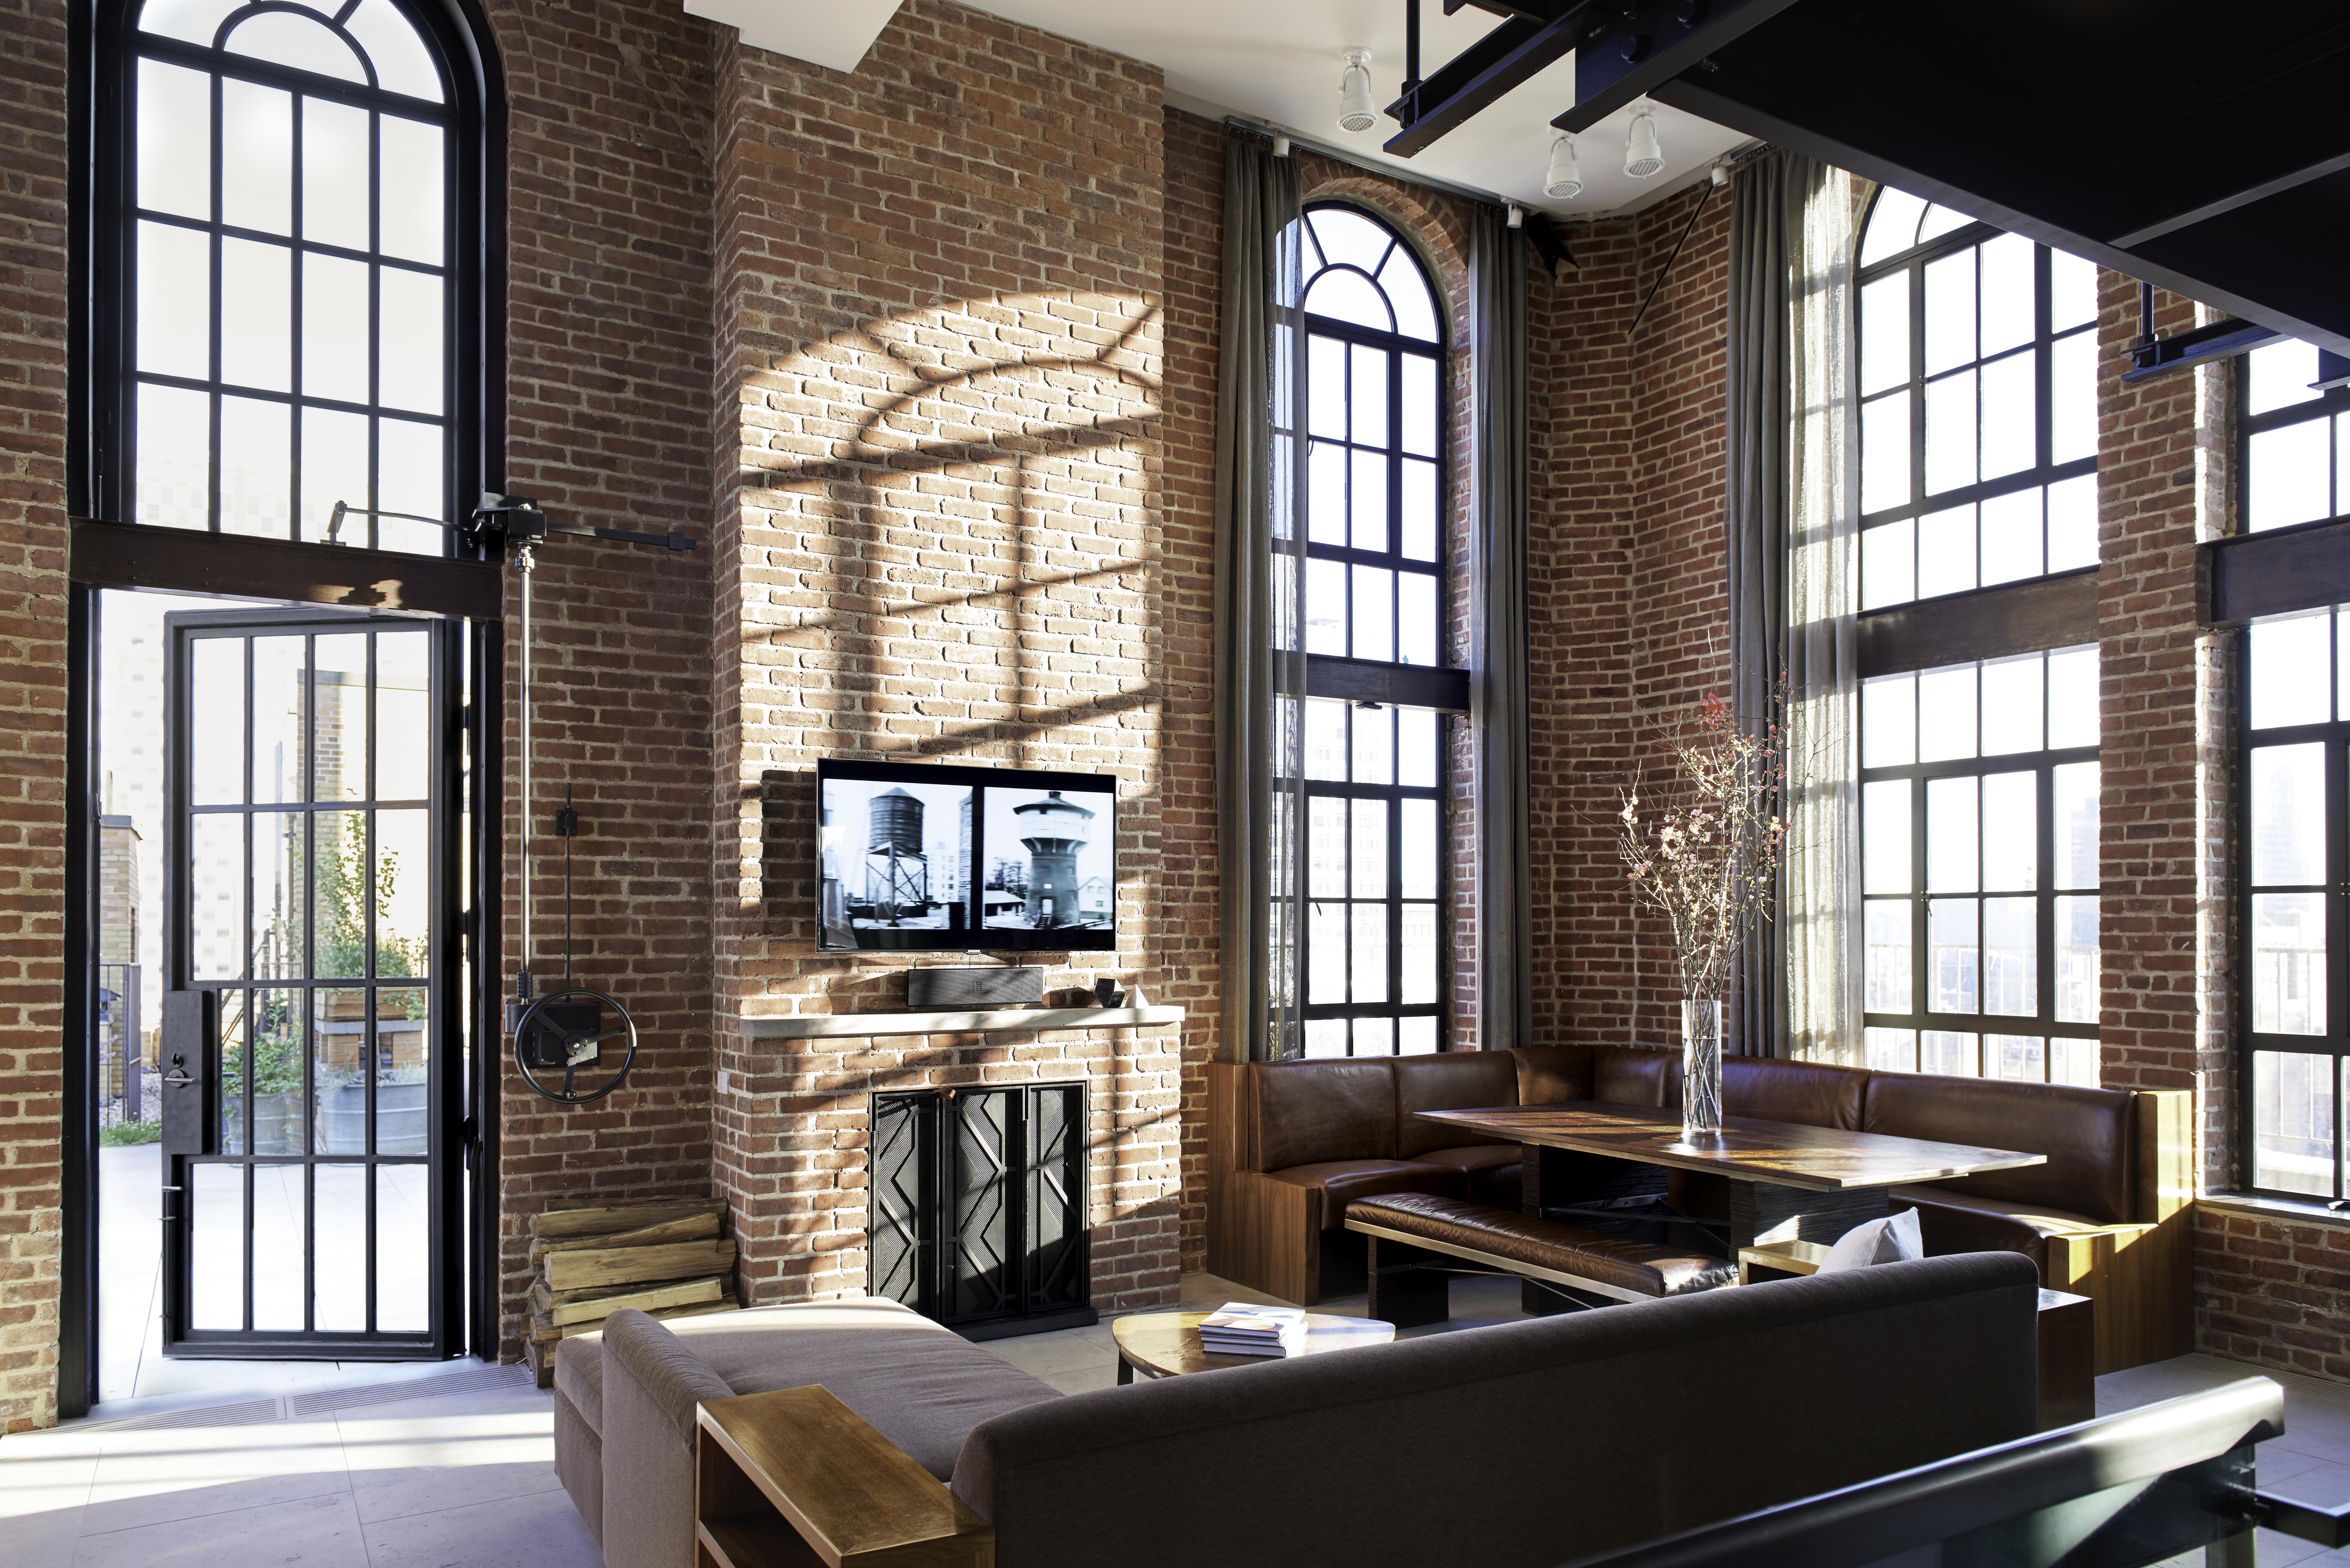 5 Best Resources to Find No Fee Apartment Rental Listings in NYC ...